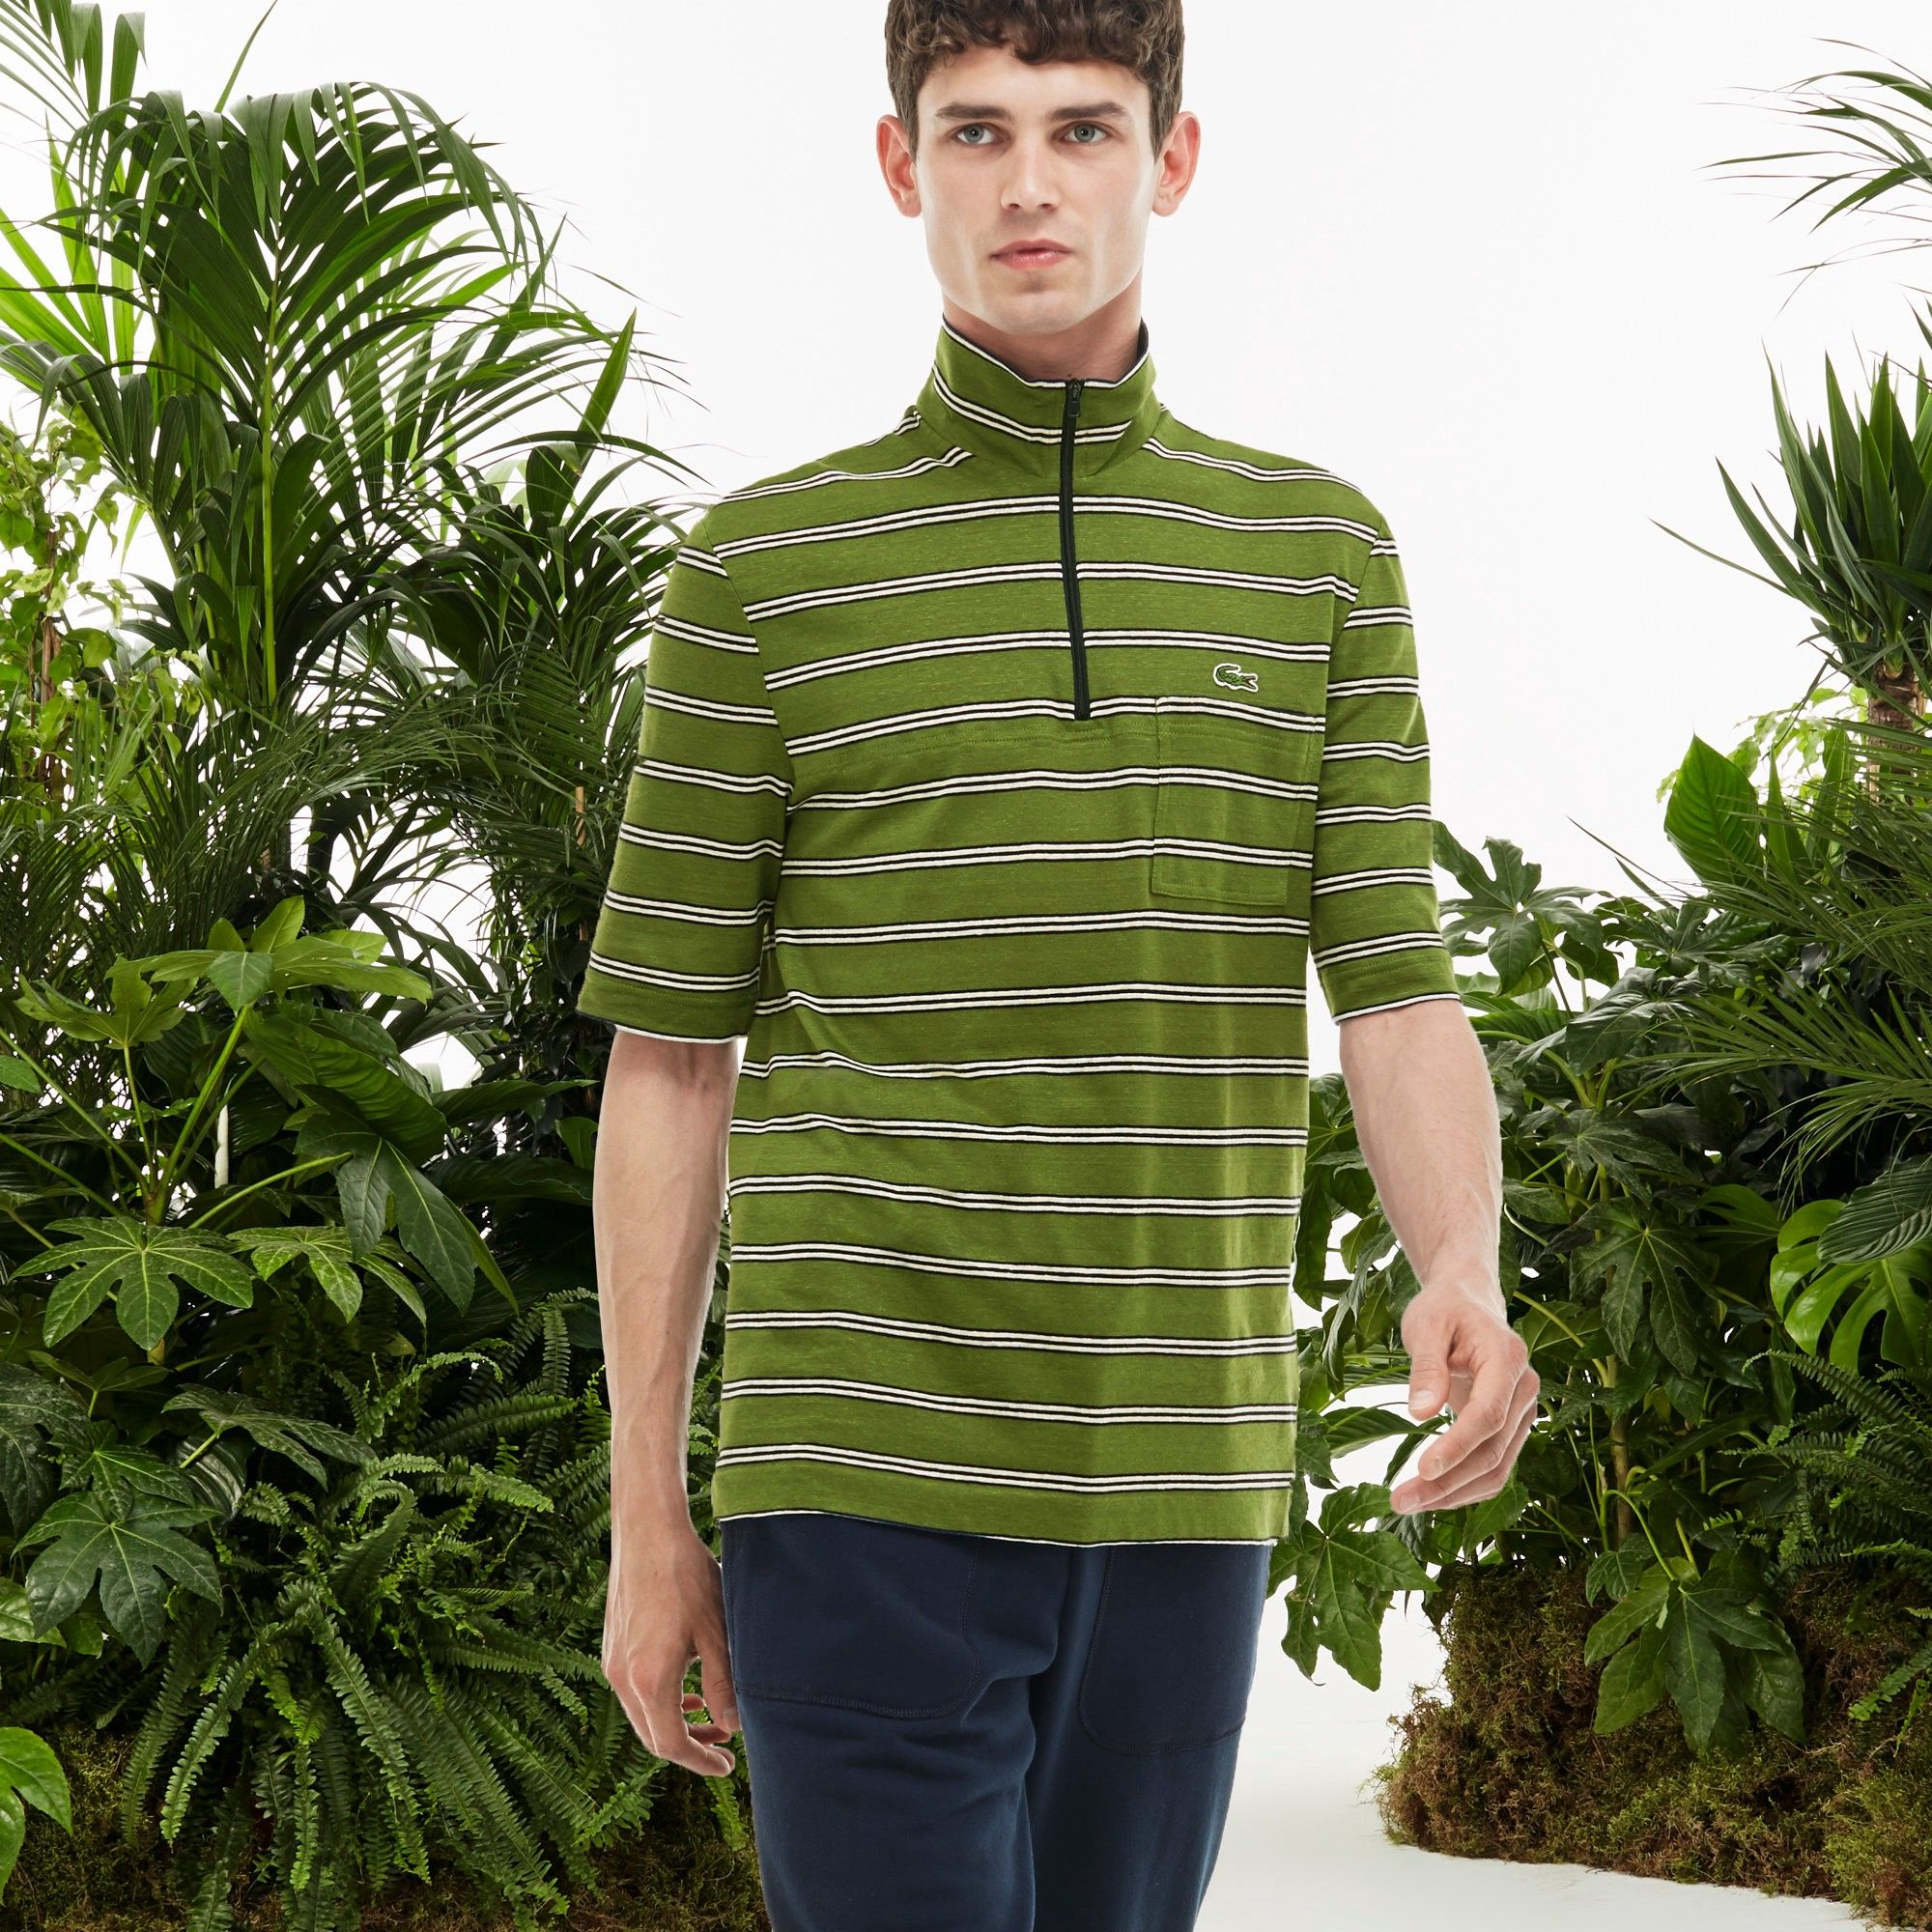 ae72a782857cc6 LACOSTE Men S Fashion Show Jersey Slim Fit Zip Striped Polo Shirt - Lemon  Balm Abyssal Blue-Plemon Balm Abys.  lacoste  cloth  all